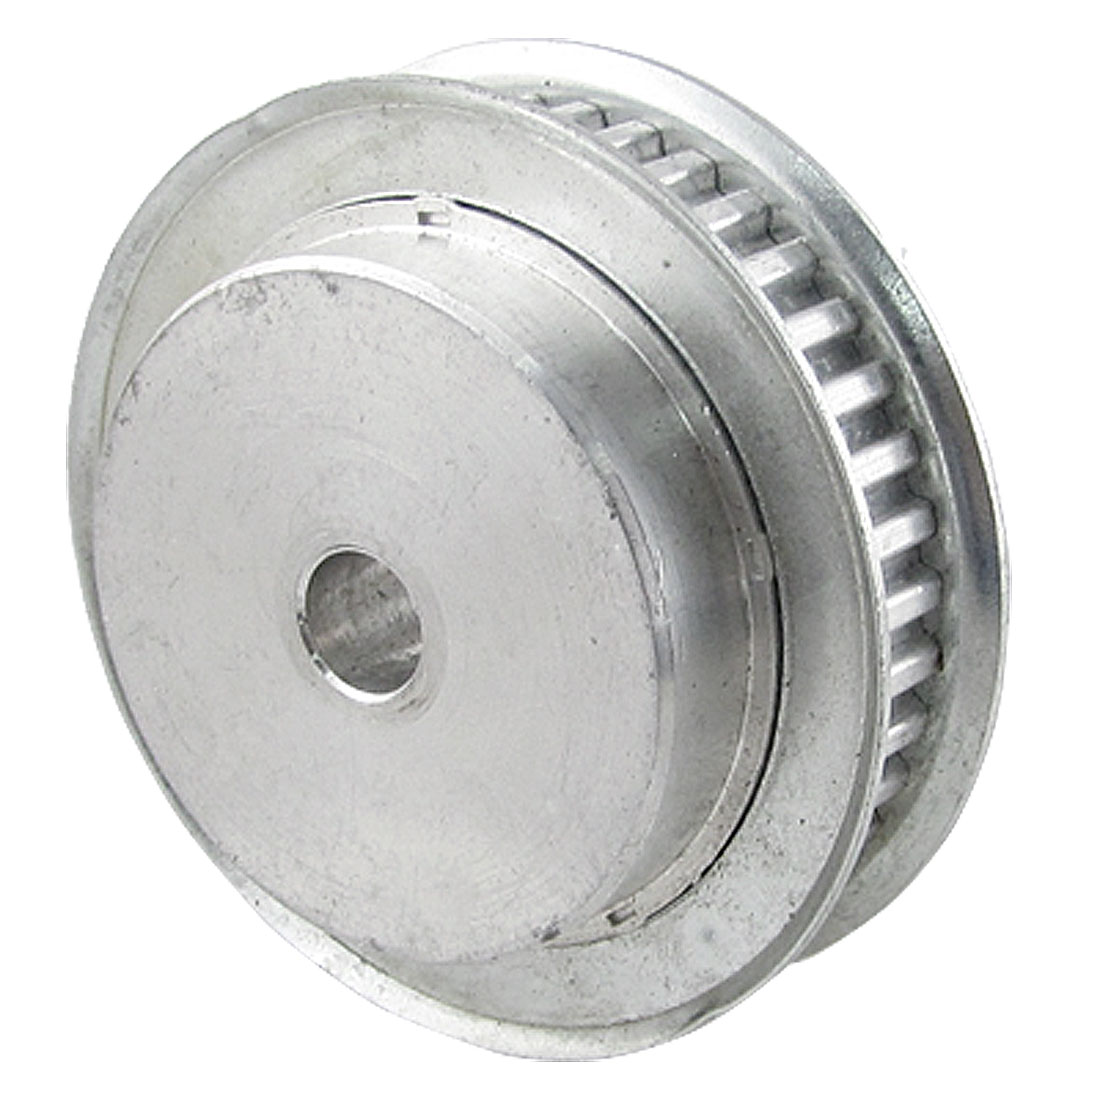 "XL Type 0.43"" Width Belt 5mm Pitch 40 Teeth Timing Pulley"